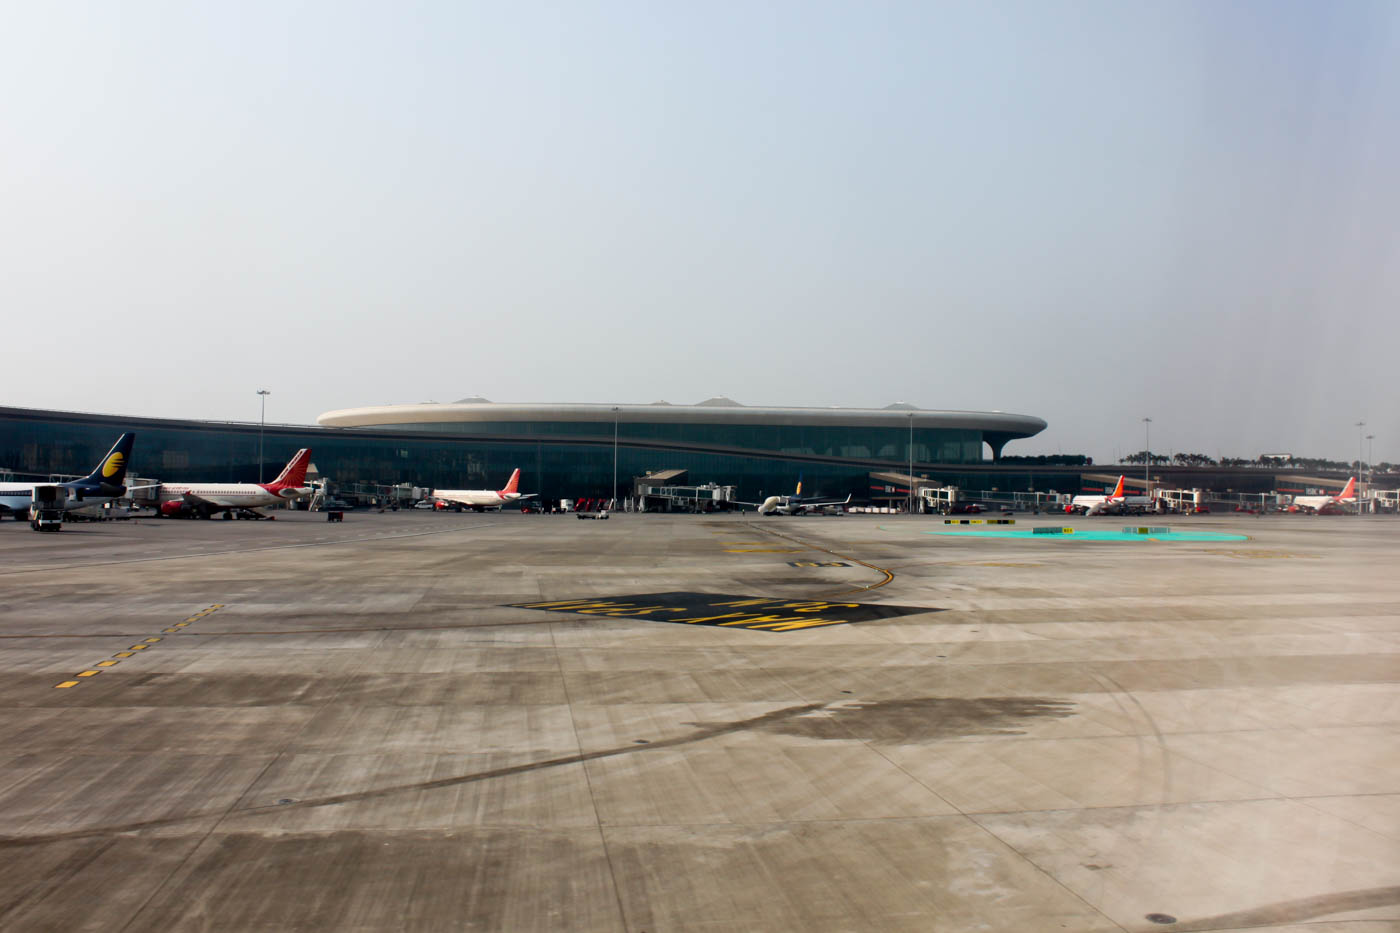 Mumbai Airport Air India Terminal 2